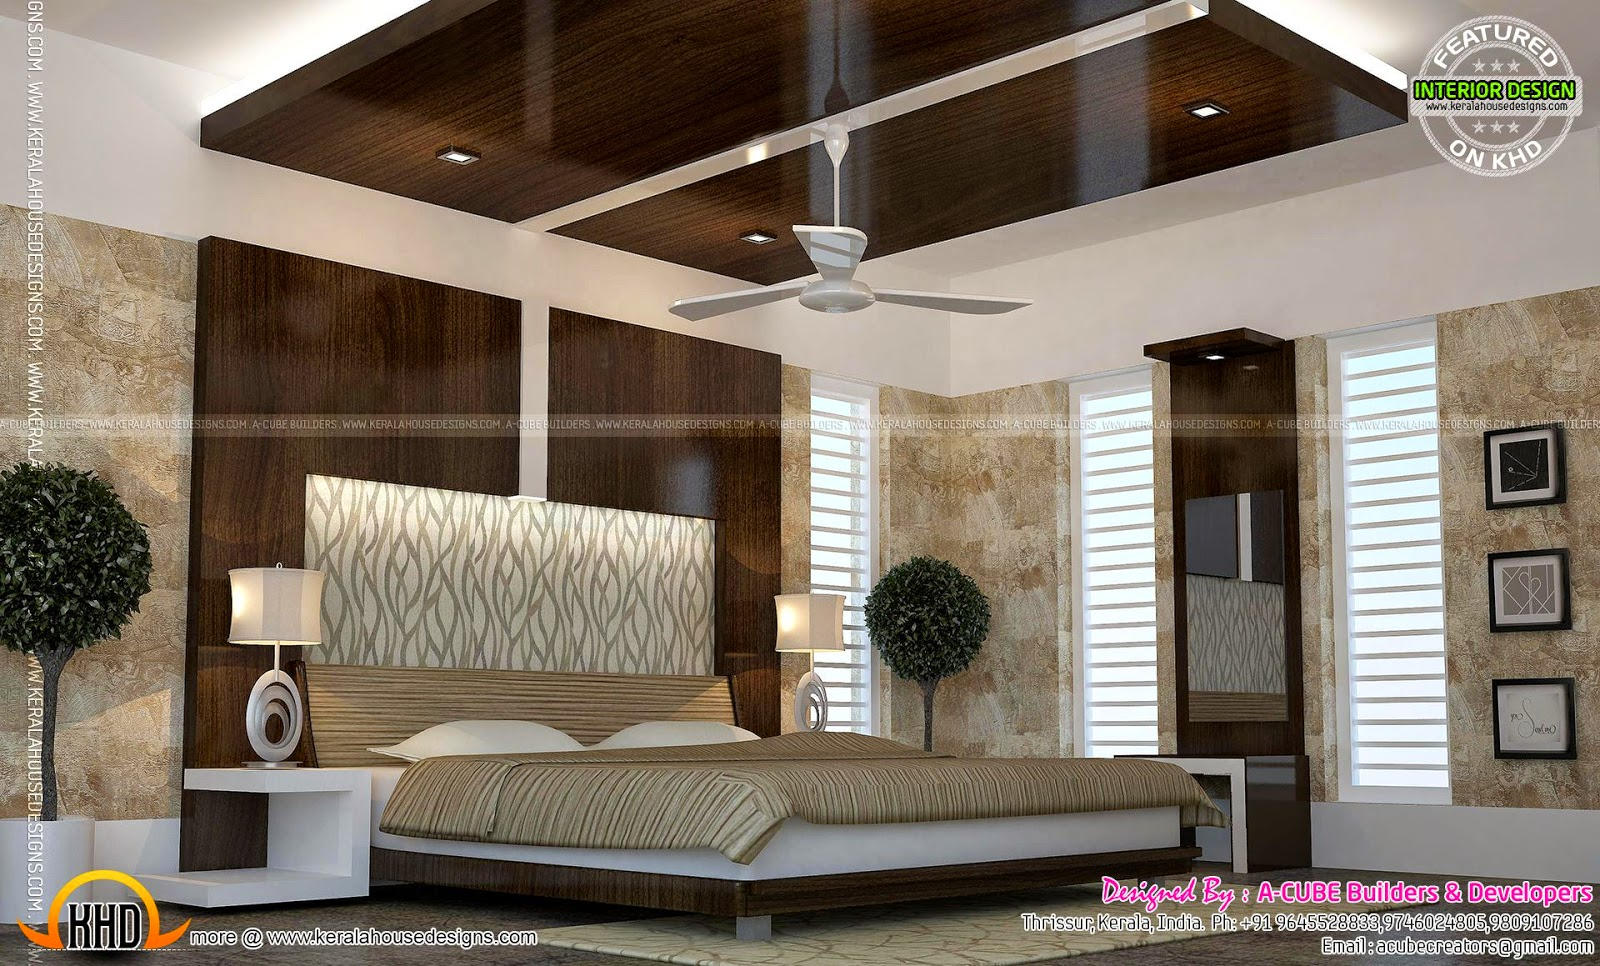 Kerala interior design ideas kerala home design and House model interior design